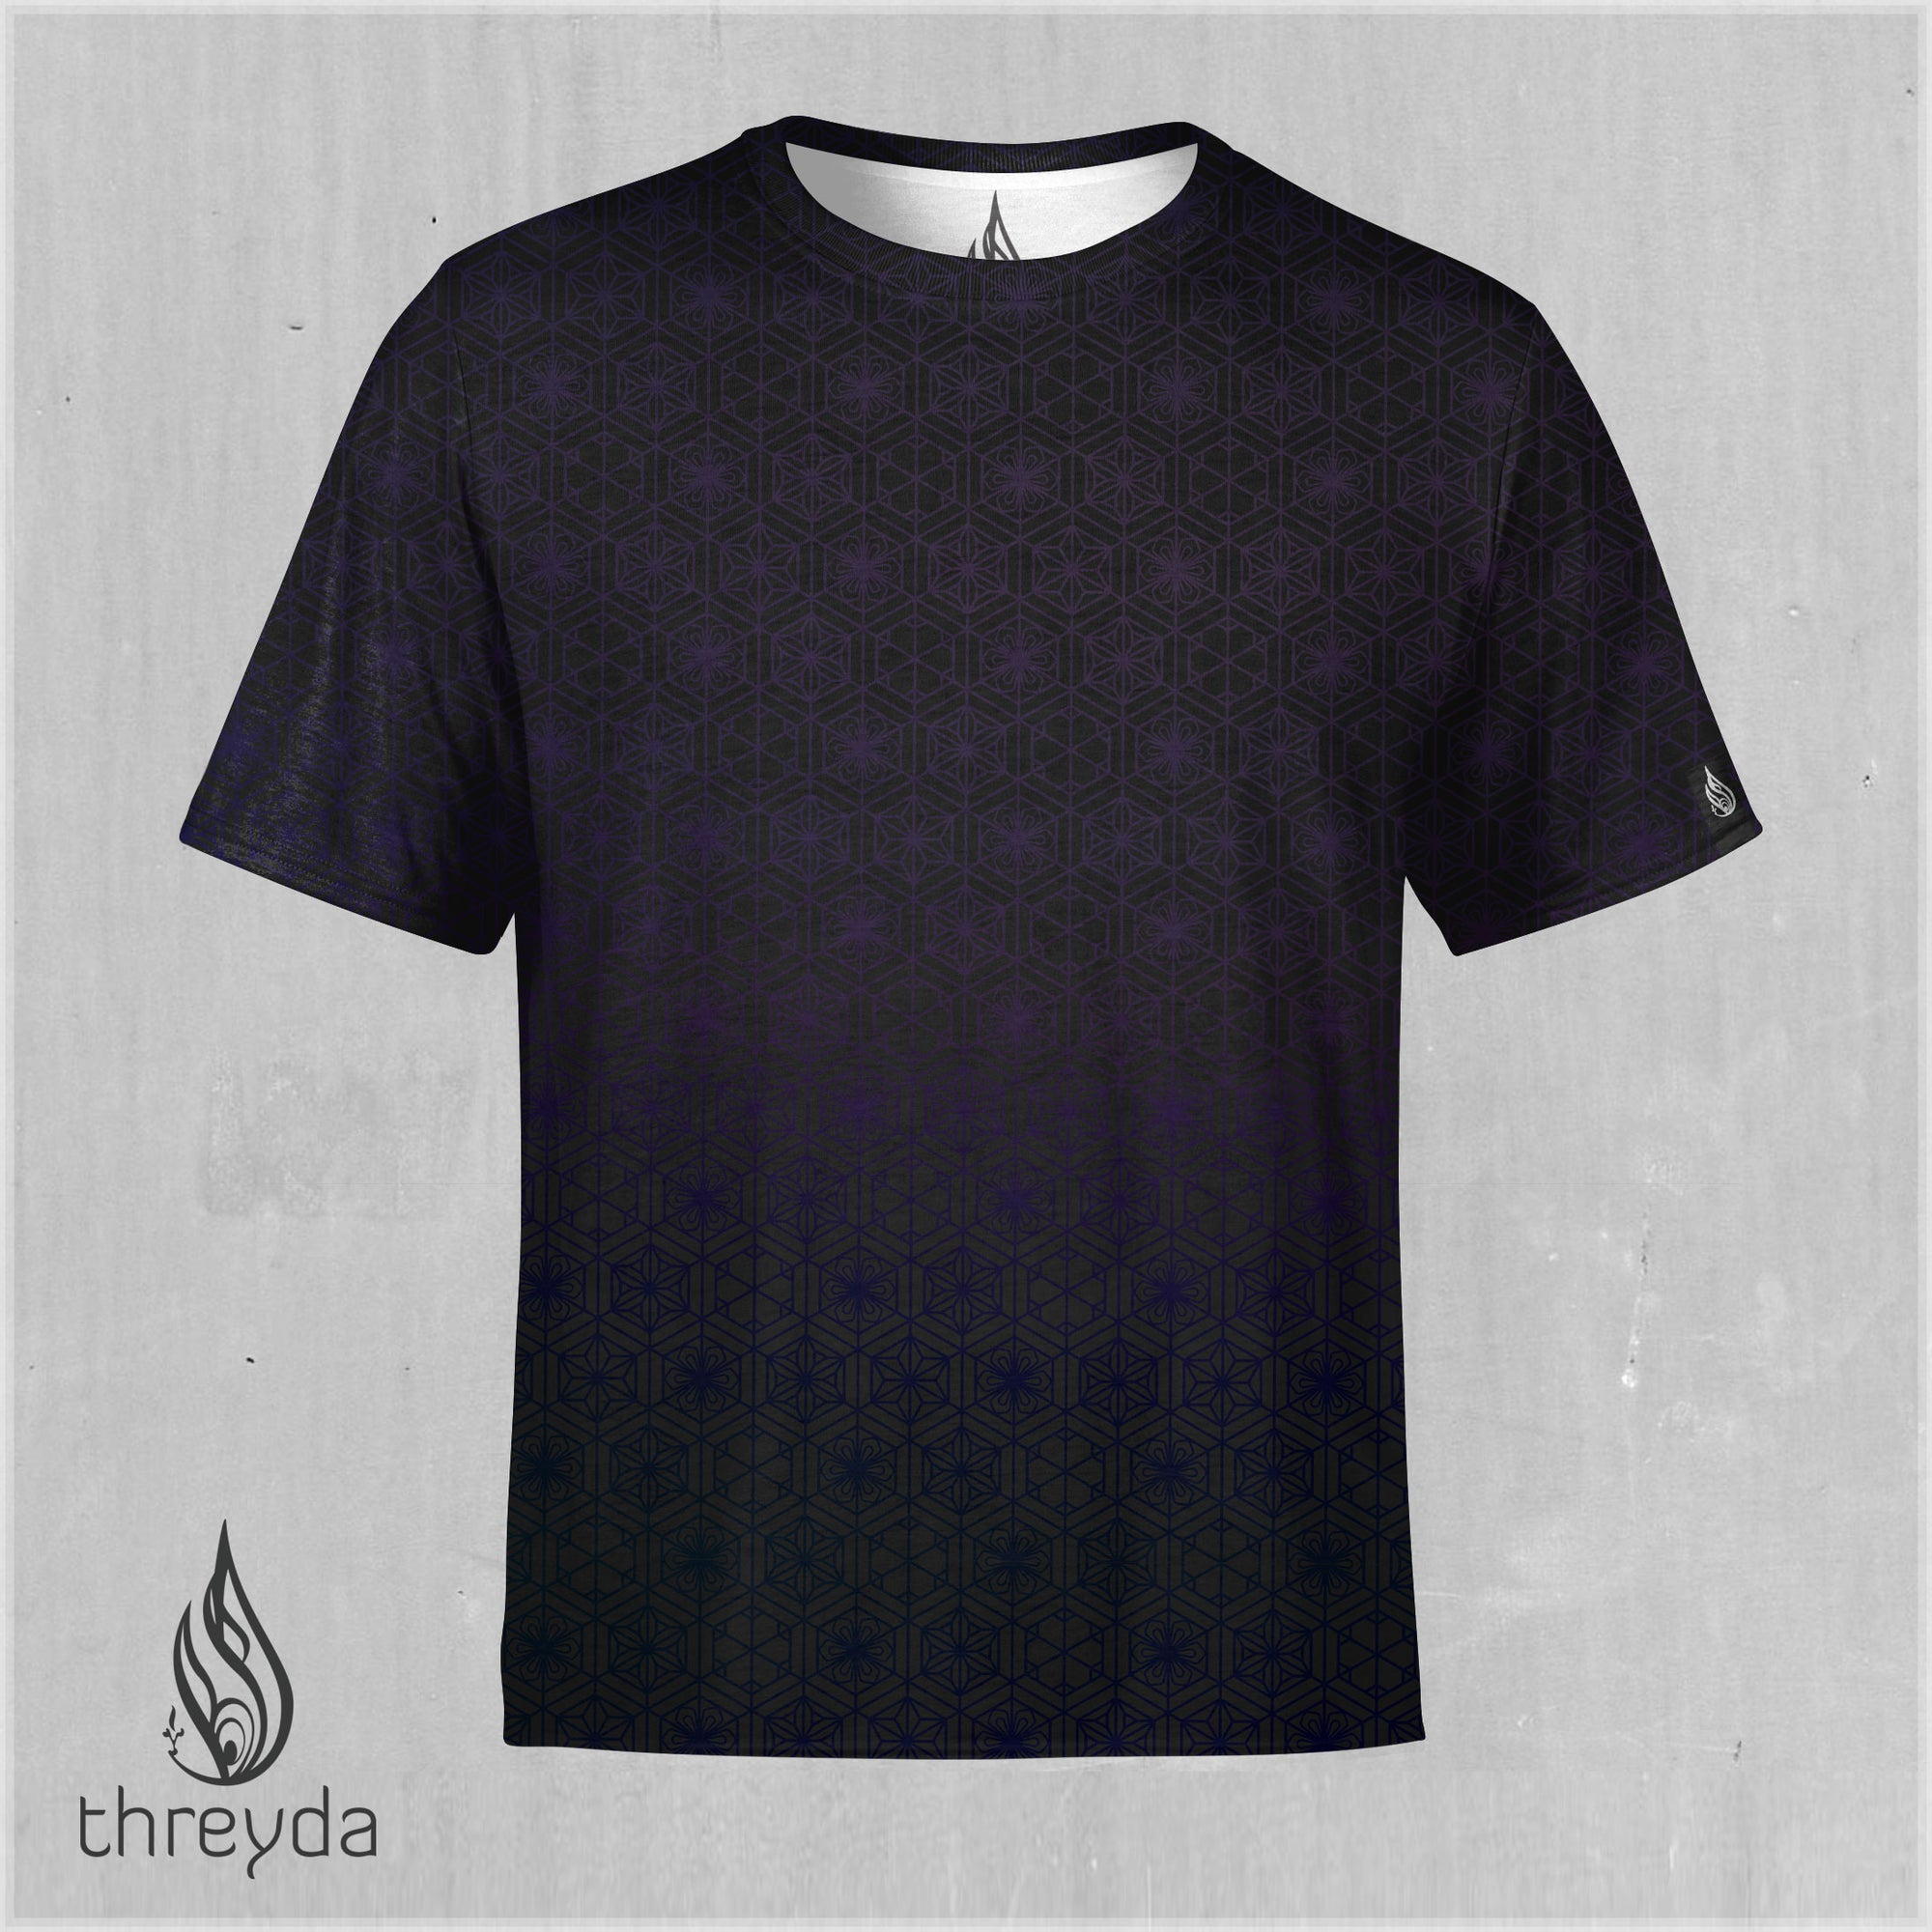 Alignment Sublimation Tee by Threyda